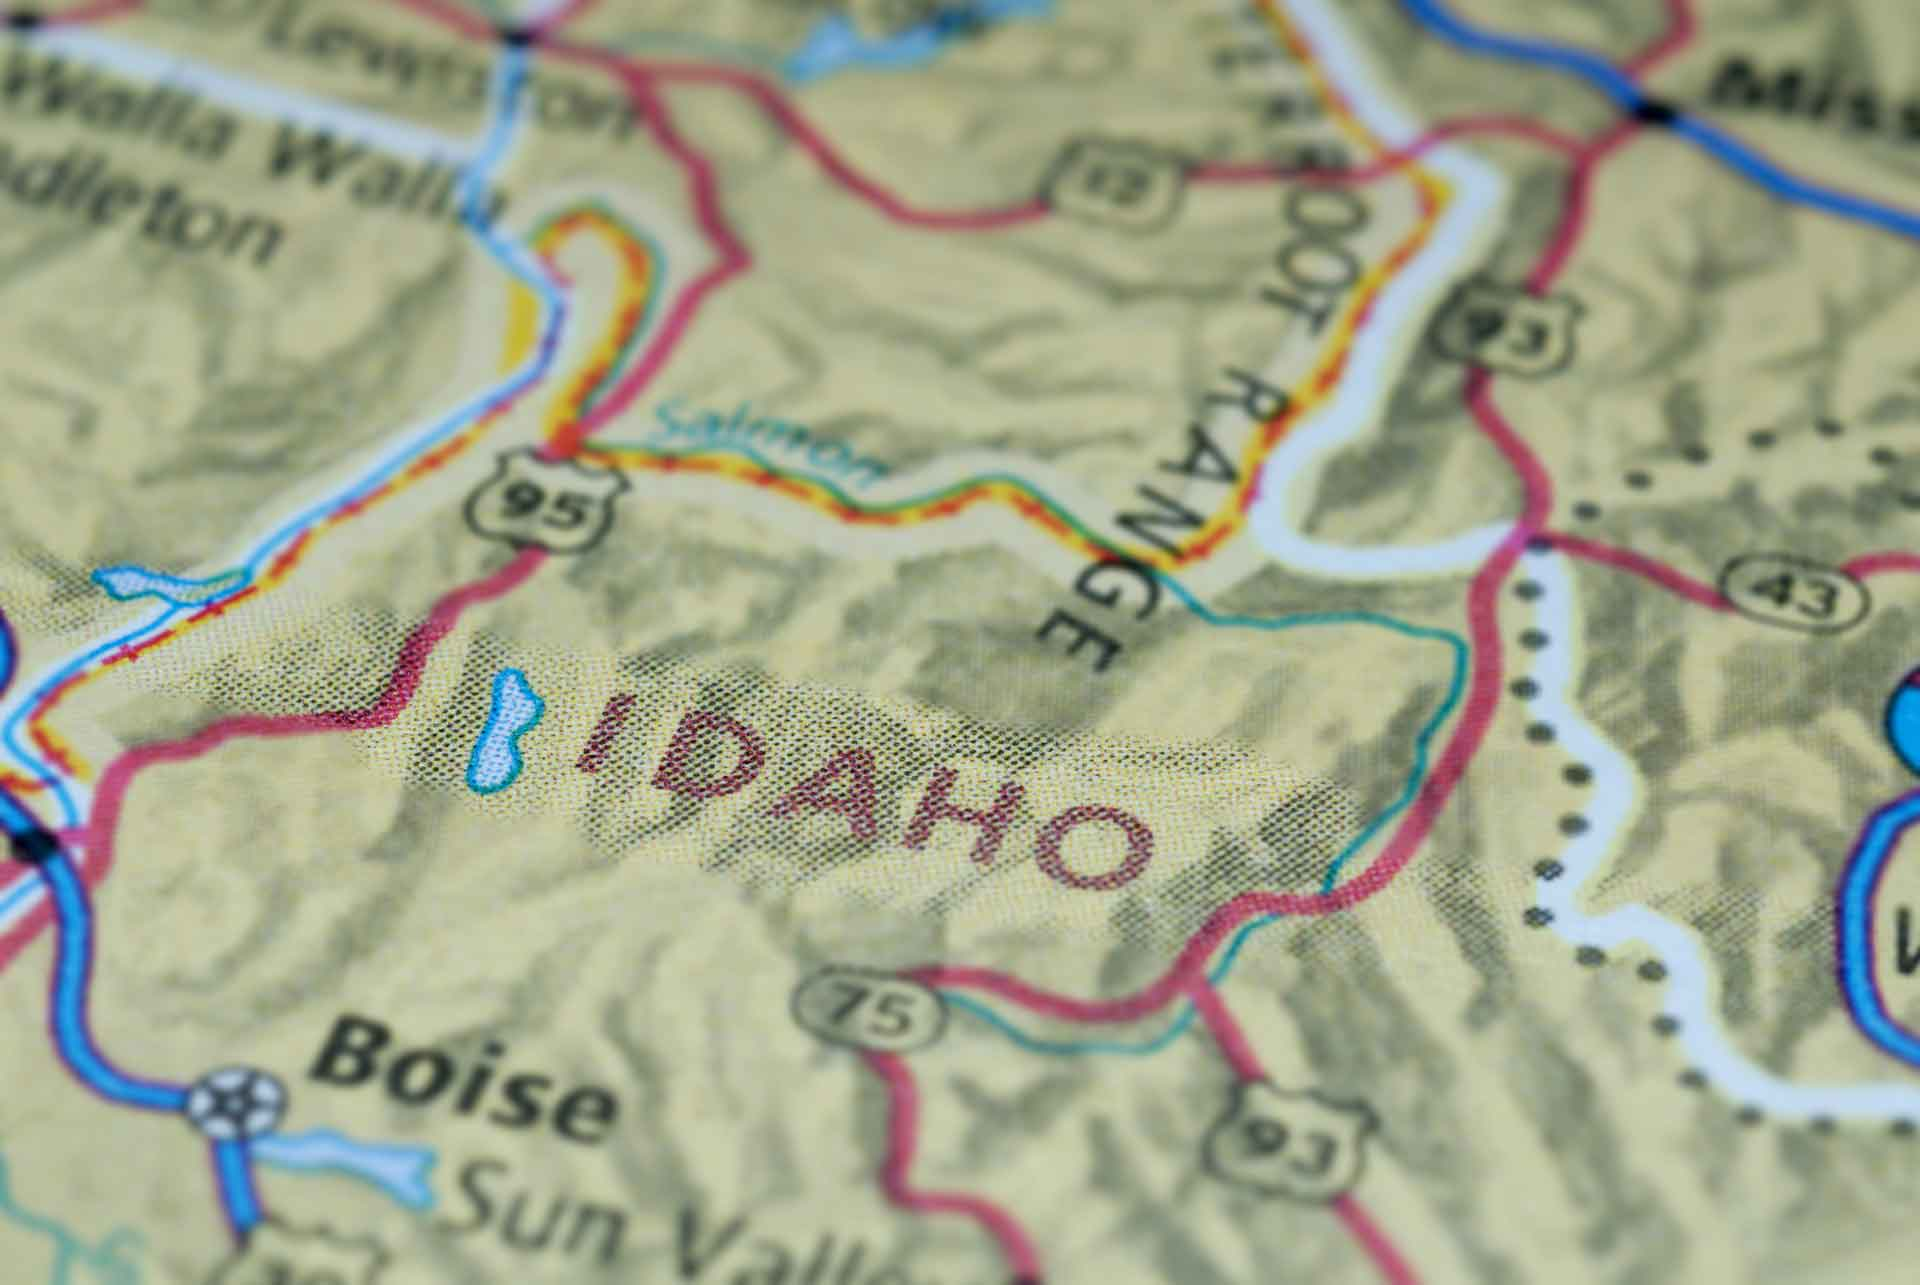 Old Historical City, County and State Maps of Idaho on western kentucky map with cities, idaho state university, idaho cities by county, northern colorado map with cities, idaho major cities, alaska highway map with cities, idaho elevations, idaho state tree, eastern kentucky map with cities, eastern washington map with cities, idaho state bird, southwestern ohio map with cities, western michigan map with cities, north alabama map with cities, idaho highway map, map of idaho showing cities, northern illinois map with cities, all idaho cities, idaho state flag, idaho state motto name,